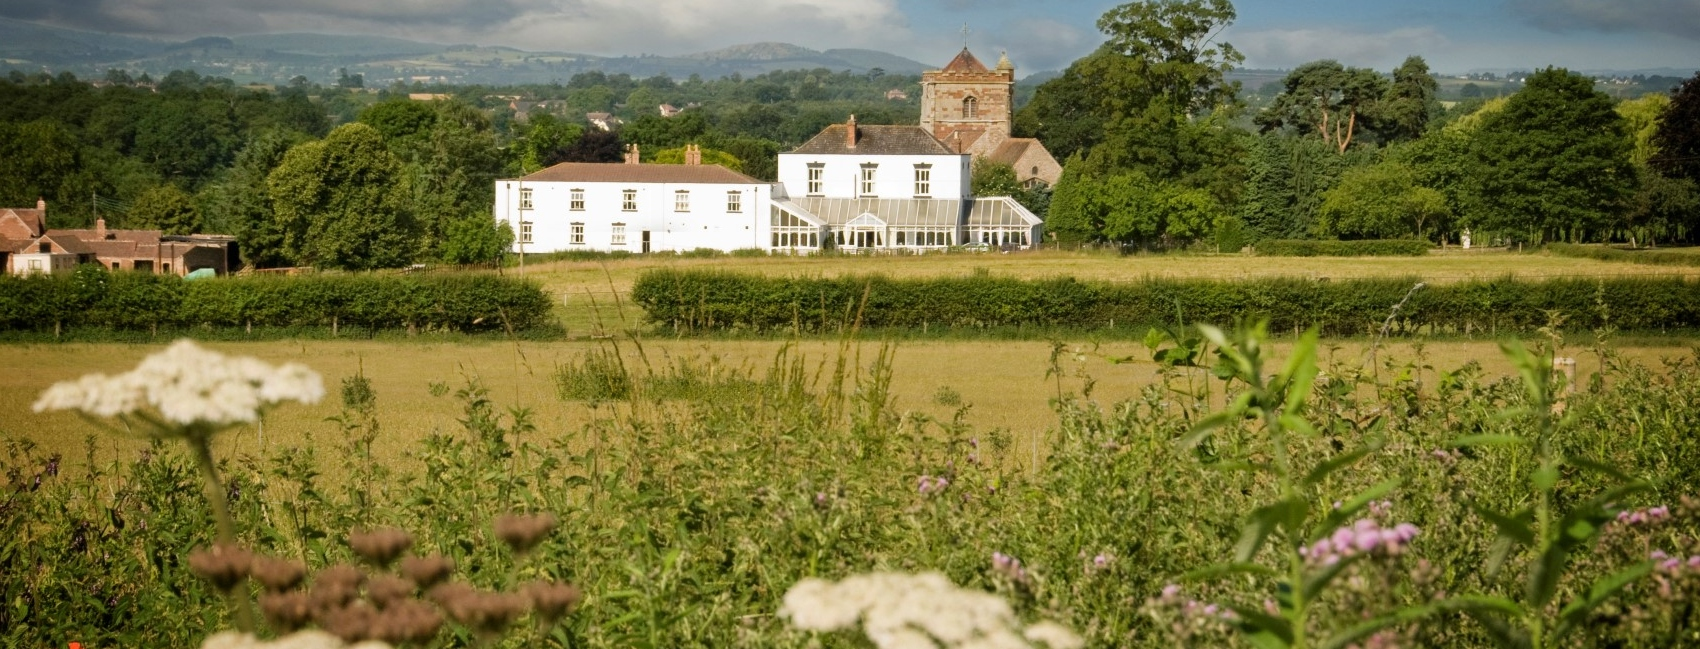 Conferences and TeamBuilding in Shrewsbury, Shropshire and at The Wroxeter Hotel